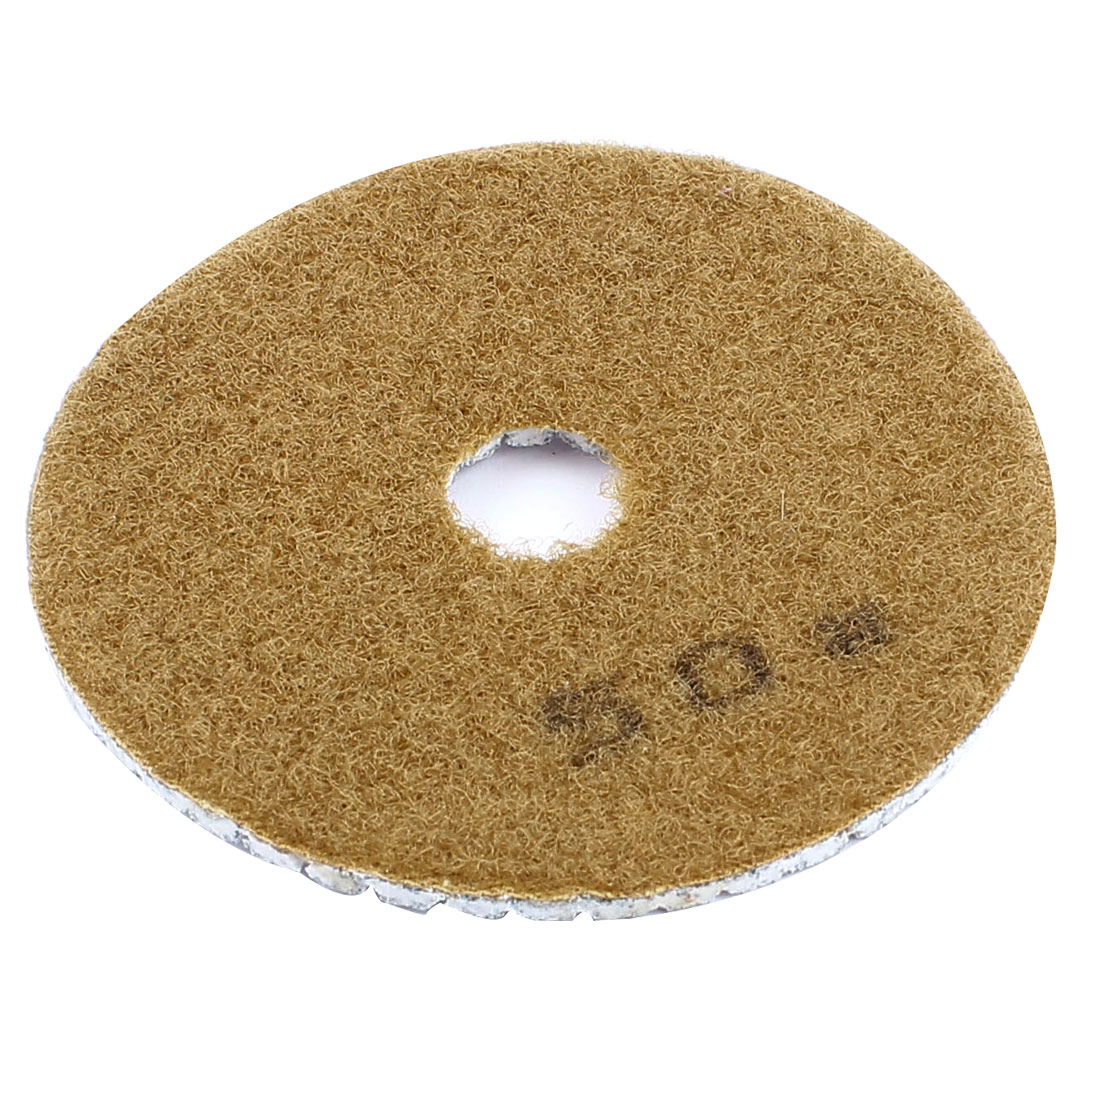 "4"" Granite Stone Marble Wet Dry Diamond Polishing Pad 50 Grit"